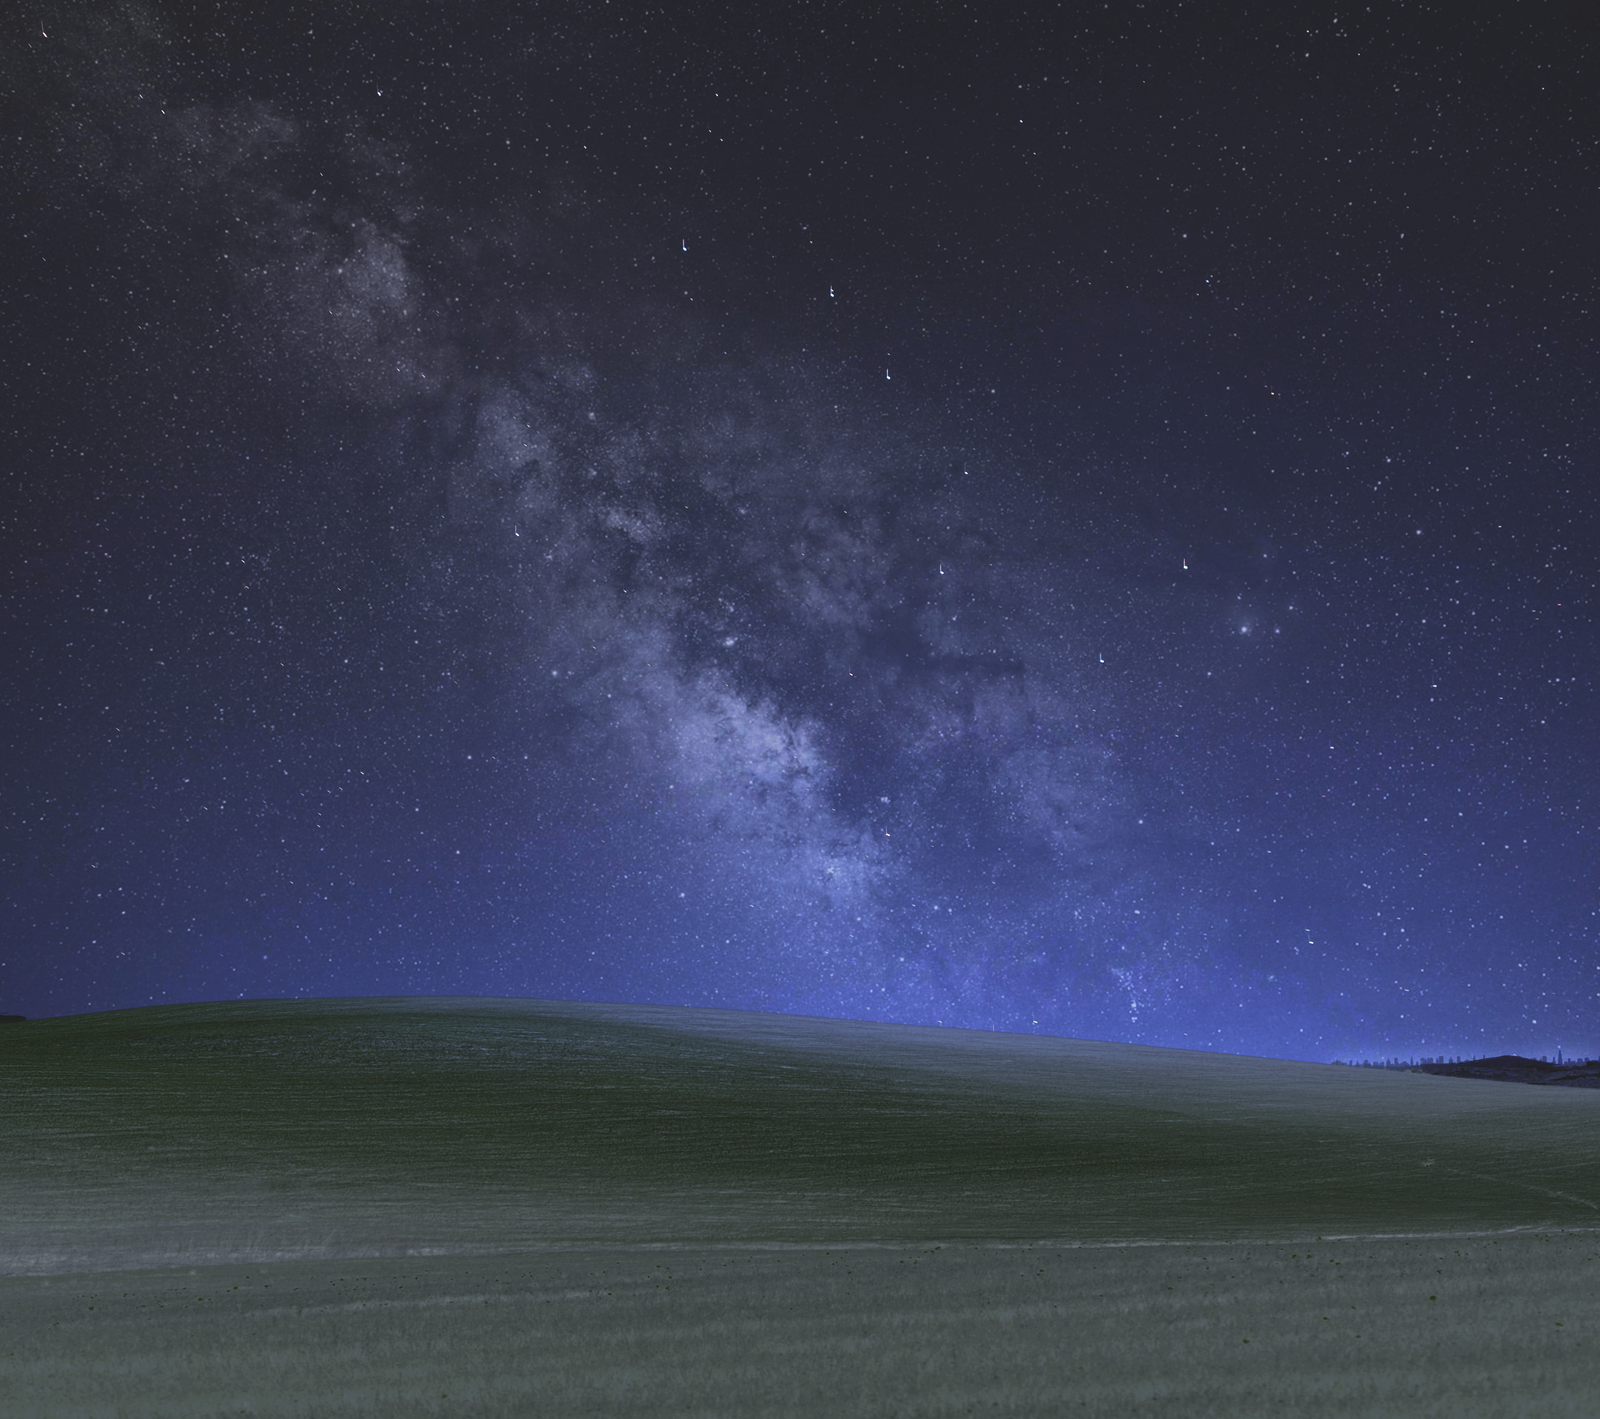 Windows Xp Bliss Wallpaper By Nigth By Rush4art On